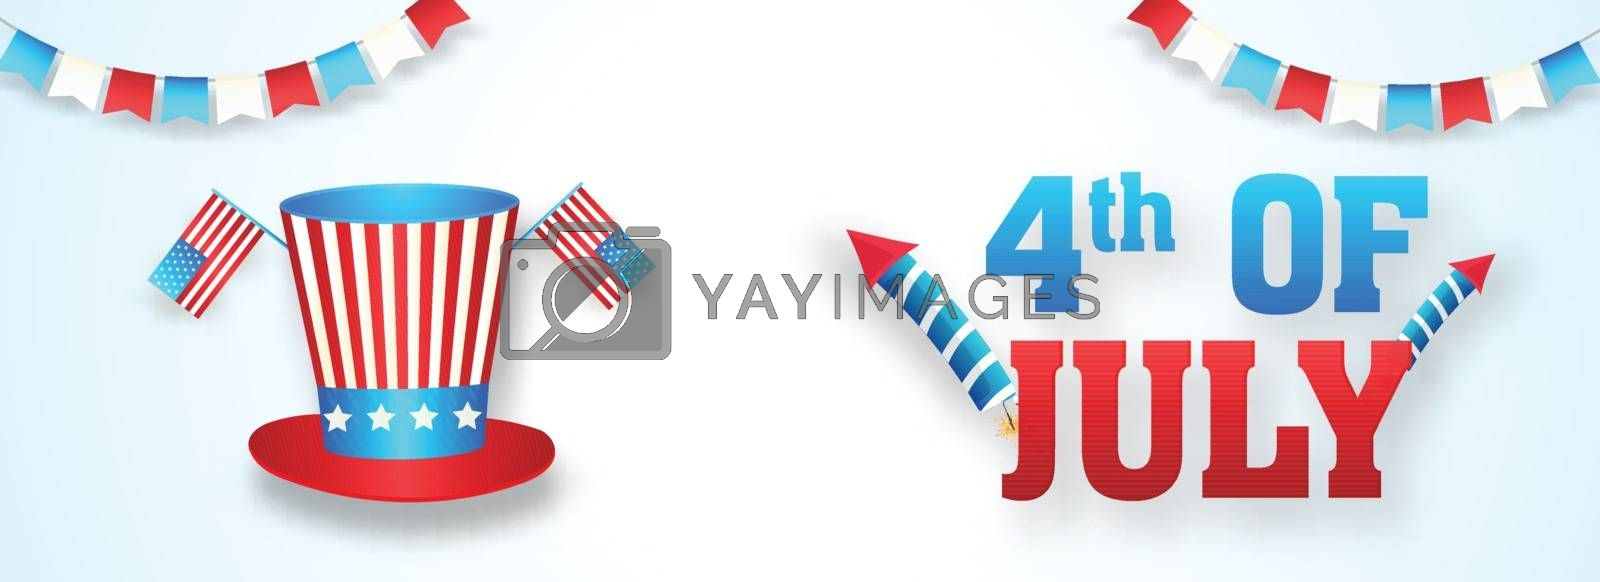 Royalty free image of 4th Of July header or banner design with illustration of uncle s by aispl